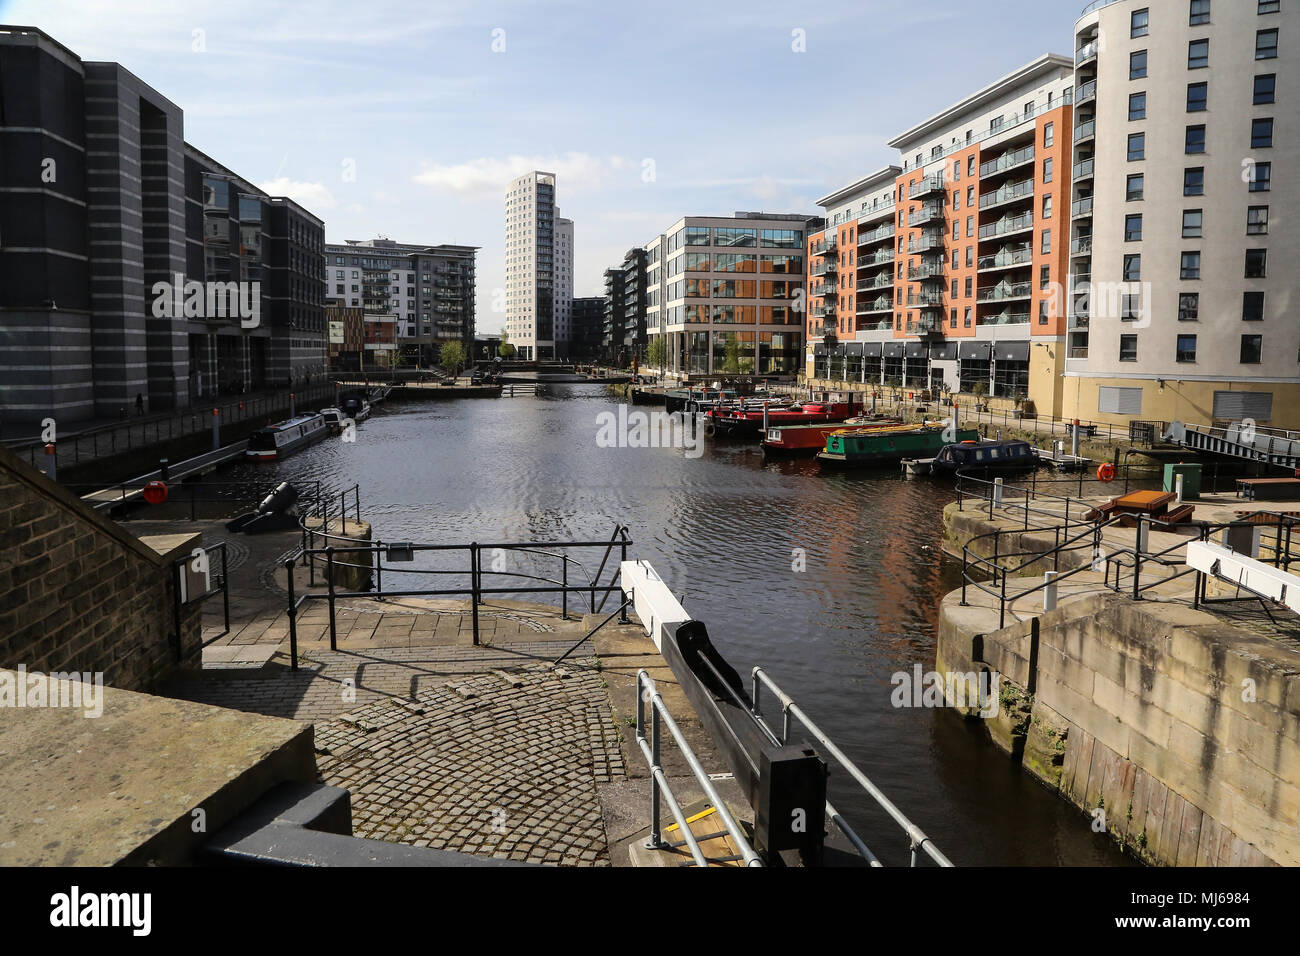 A view of Leeds Dock in the city centre formerly for boat traffic on the Leeds and Liverpool Canal. Now it is mixed use with residential and business. - Stock Image